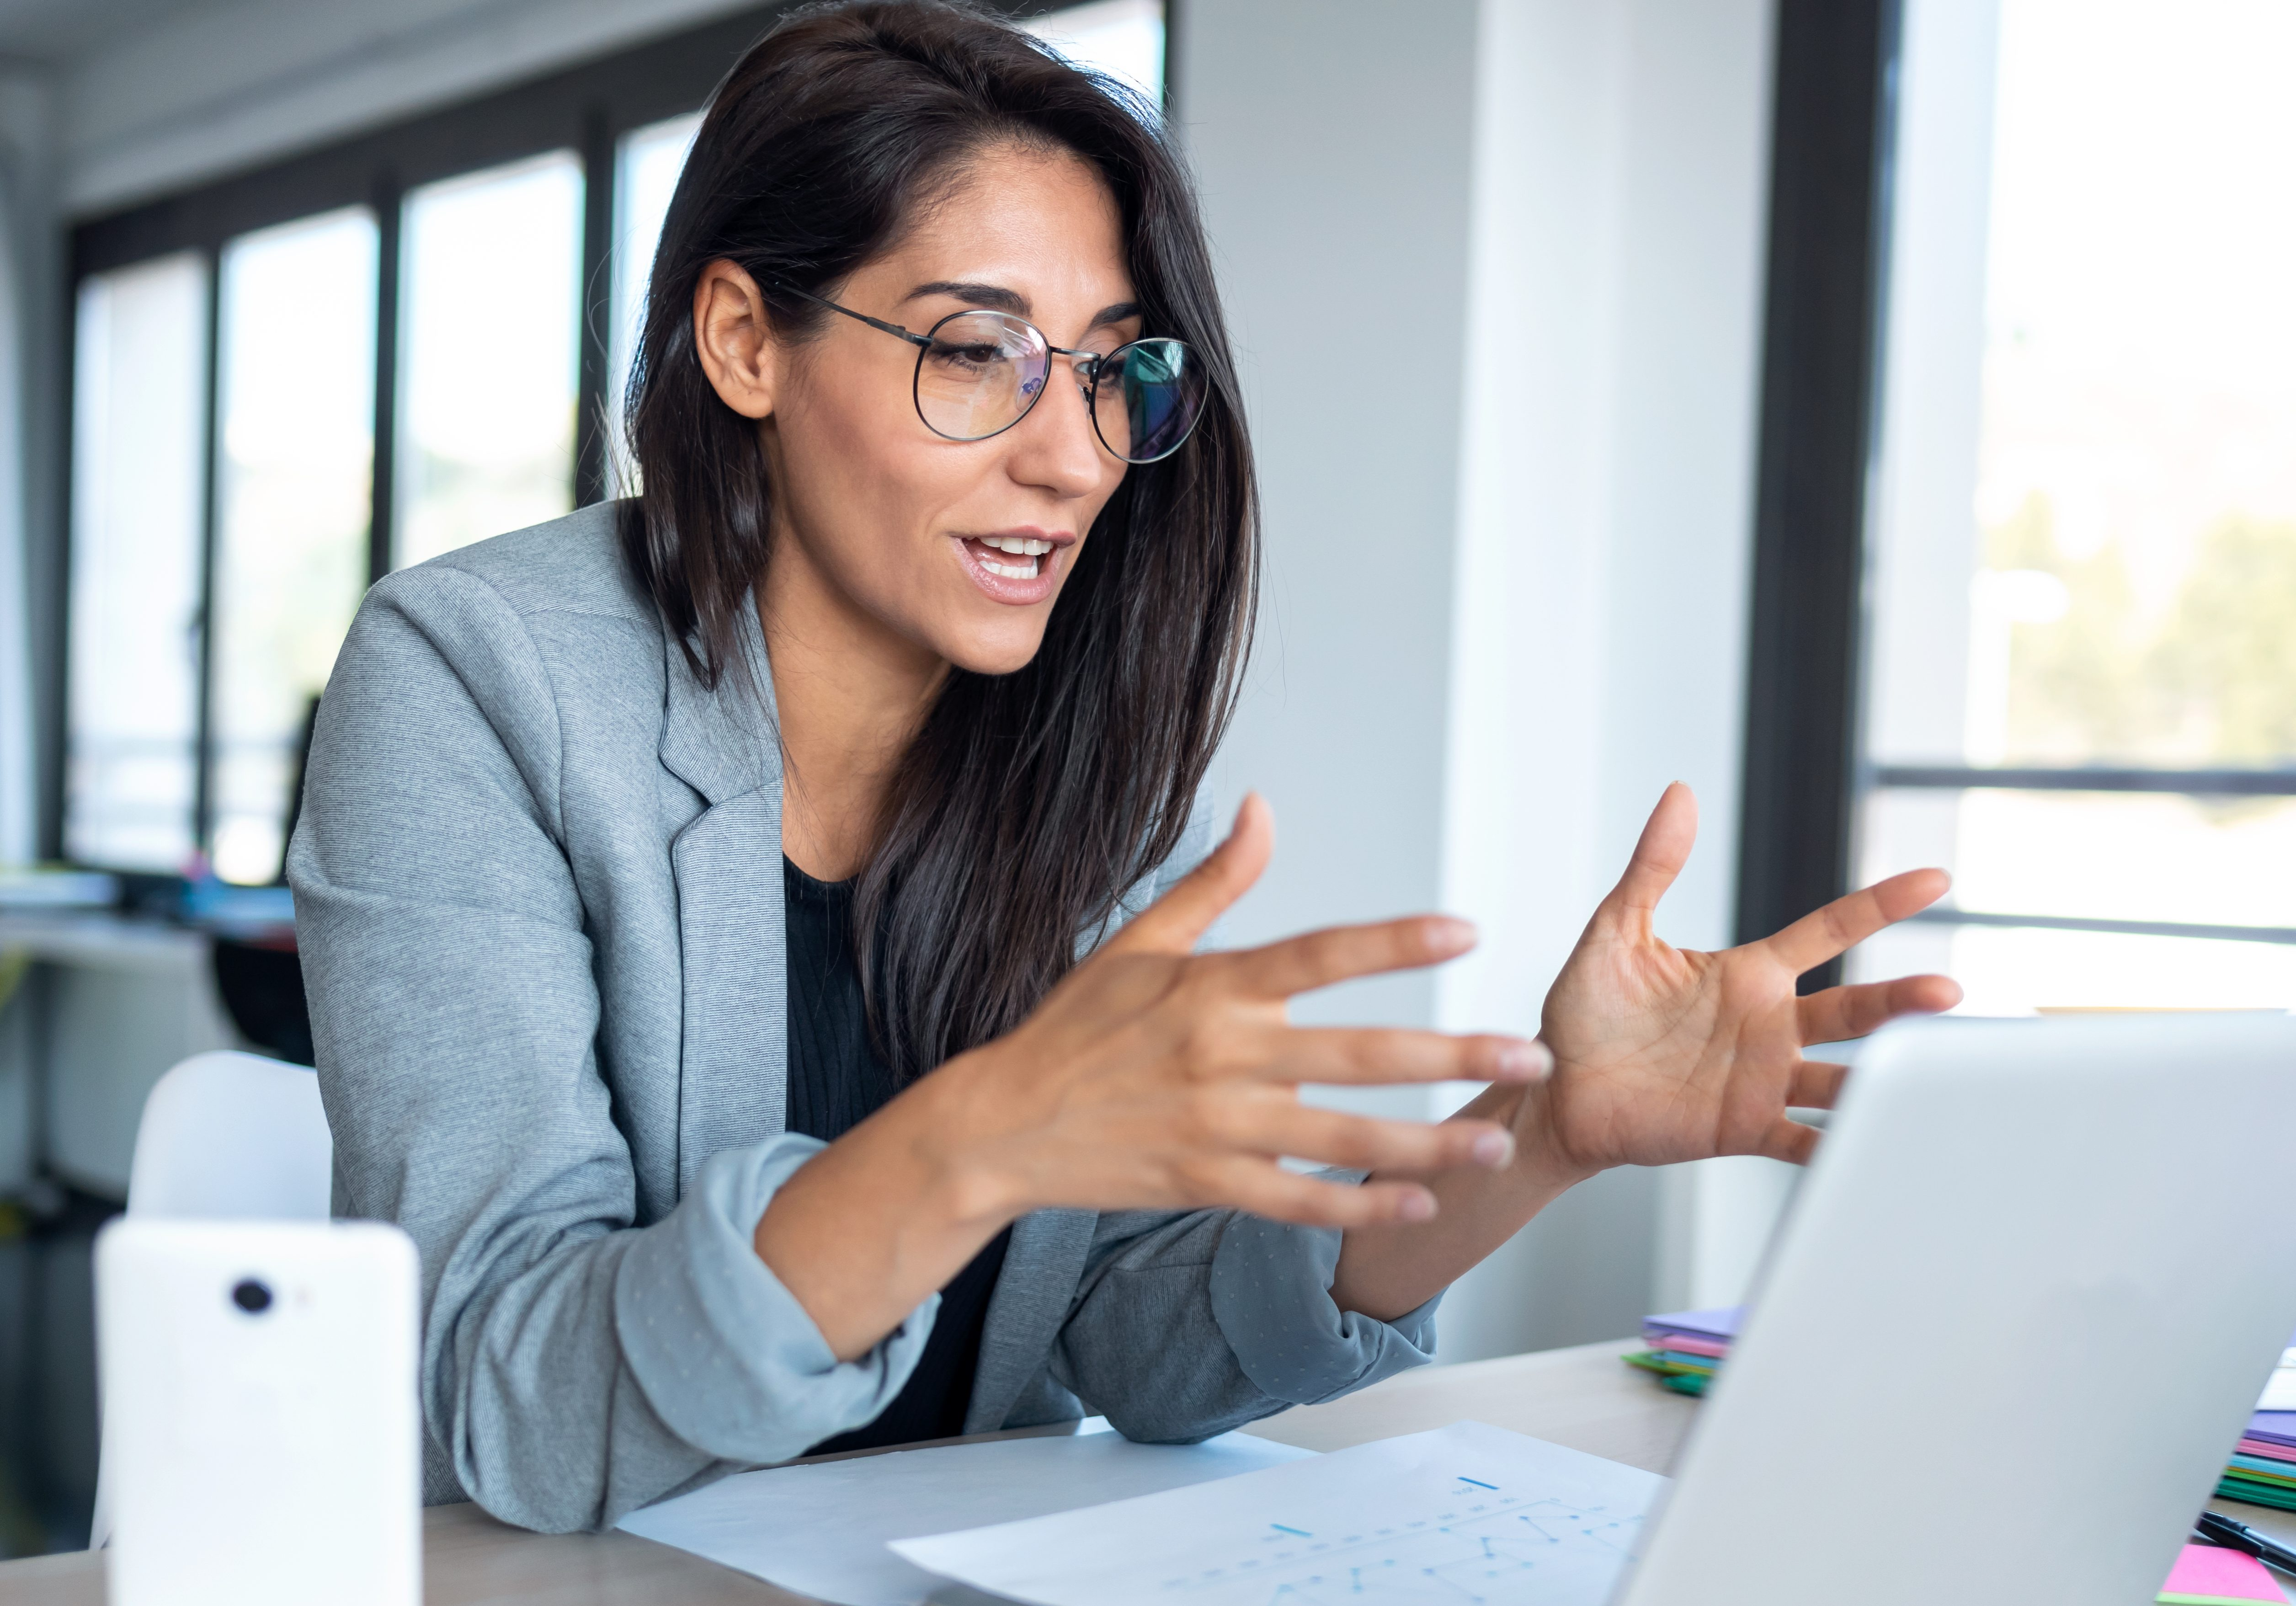 Confident business woman looking and speaking through the webcam